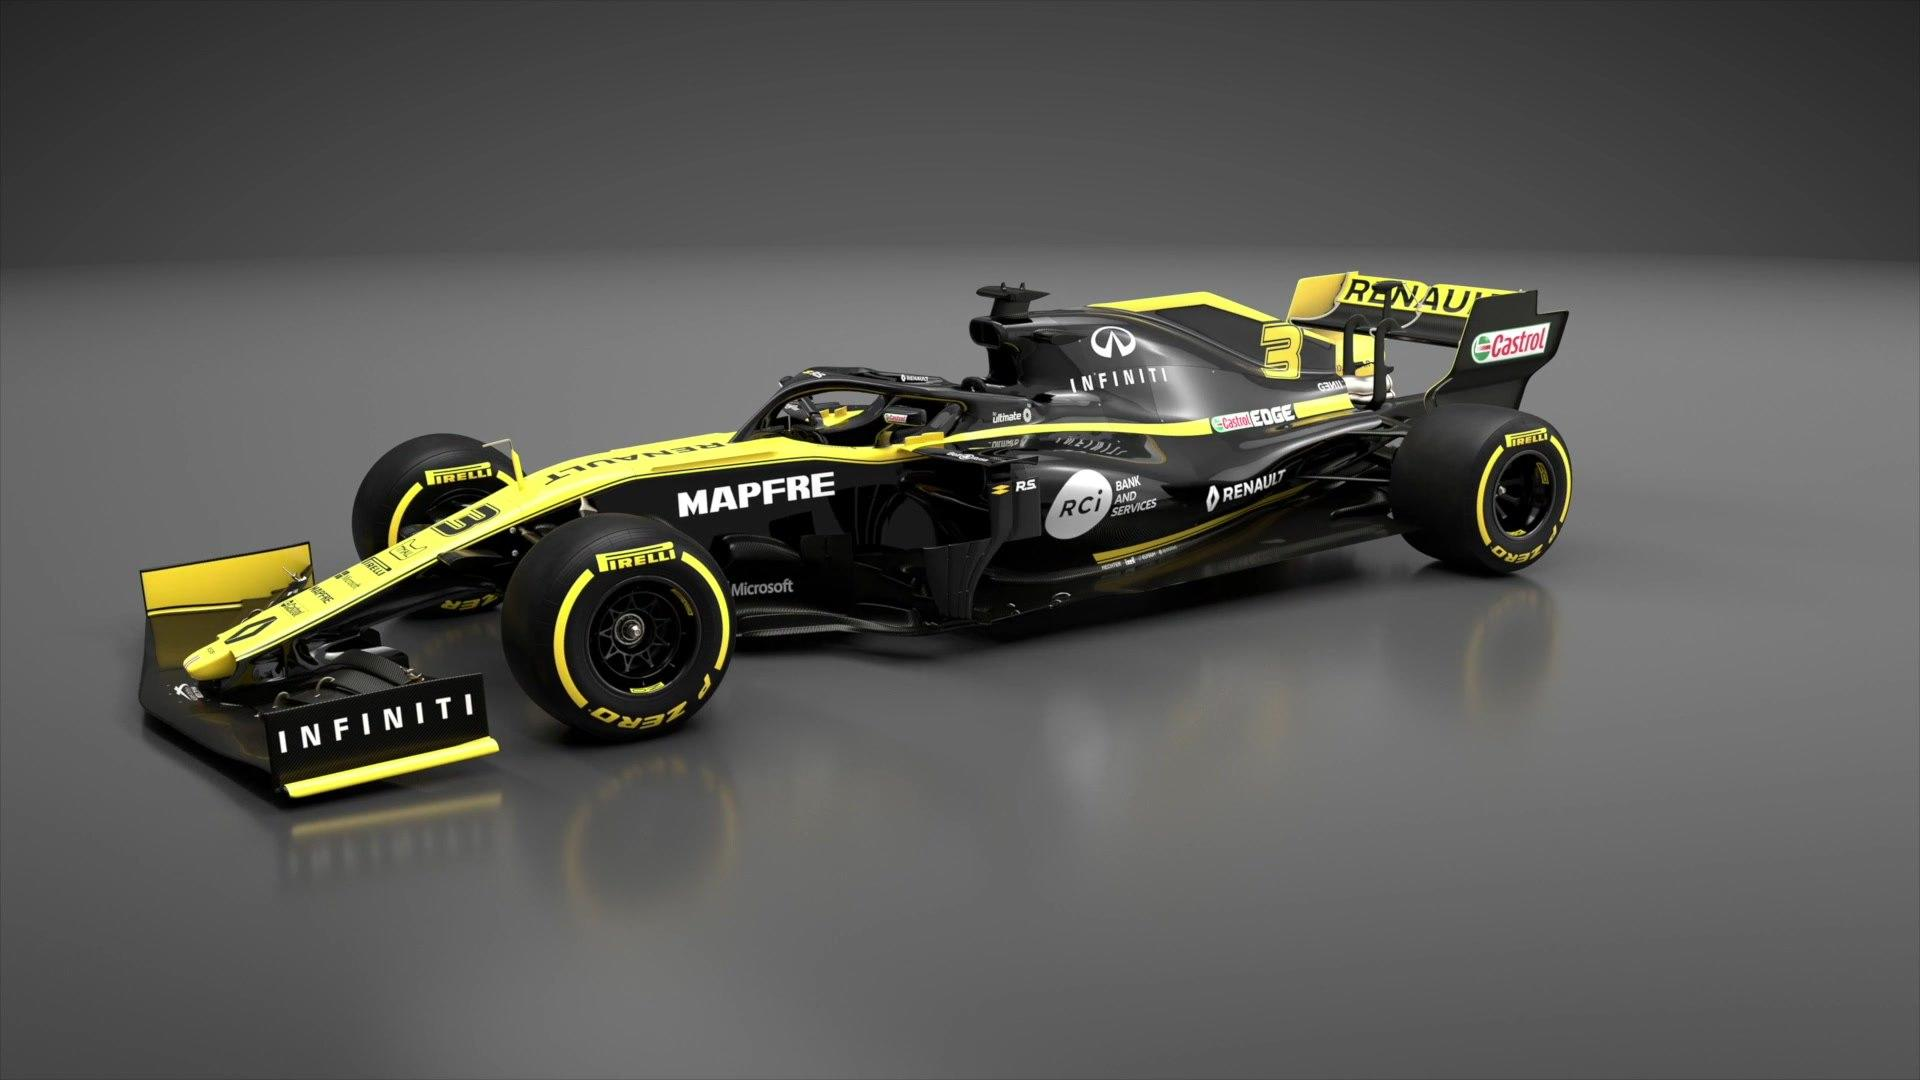 Renault F1 Team aims to maintain strong momentum